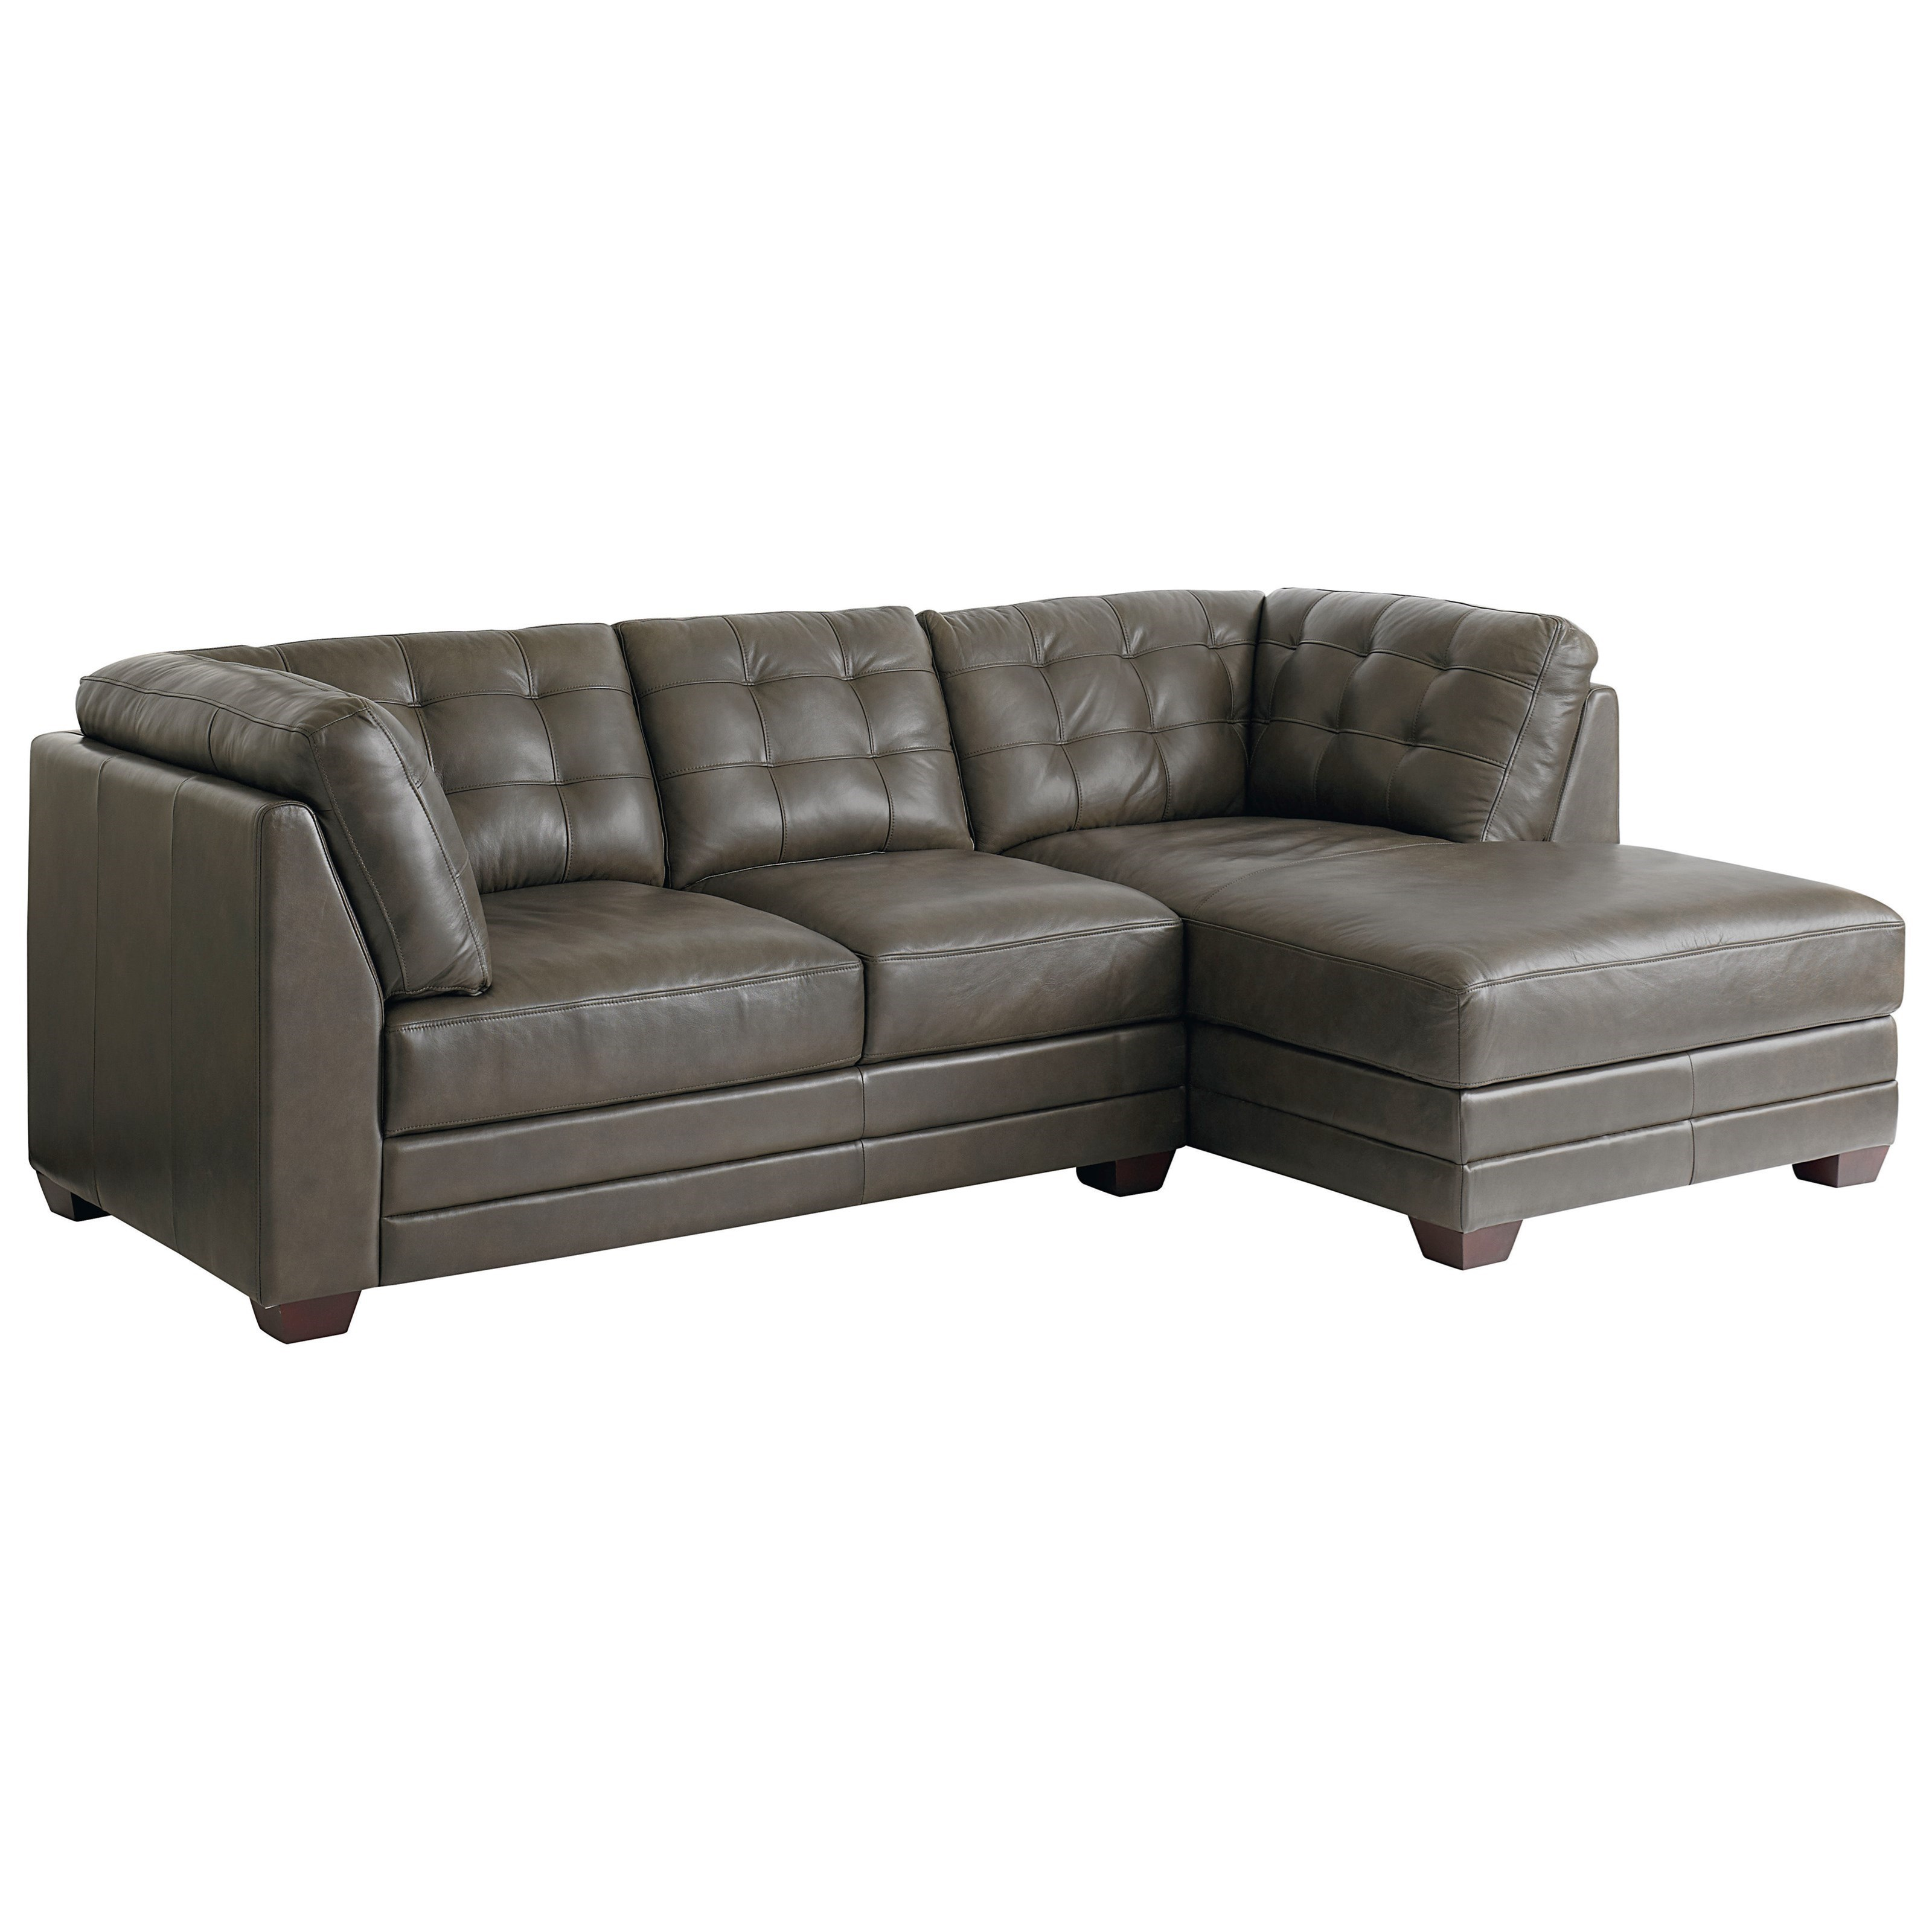 Bassett Room Planner: 2 Piece Sectional With Chaise